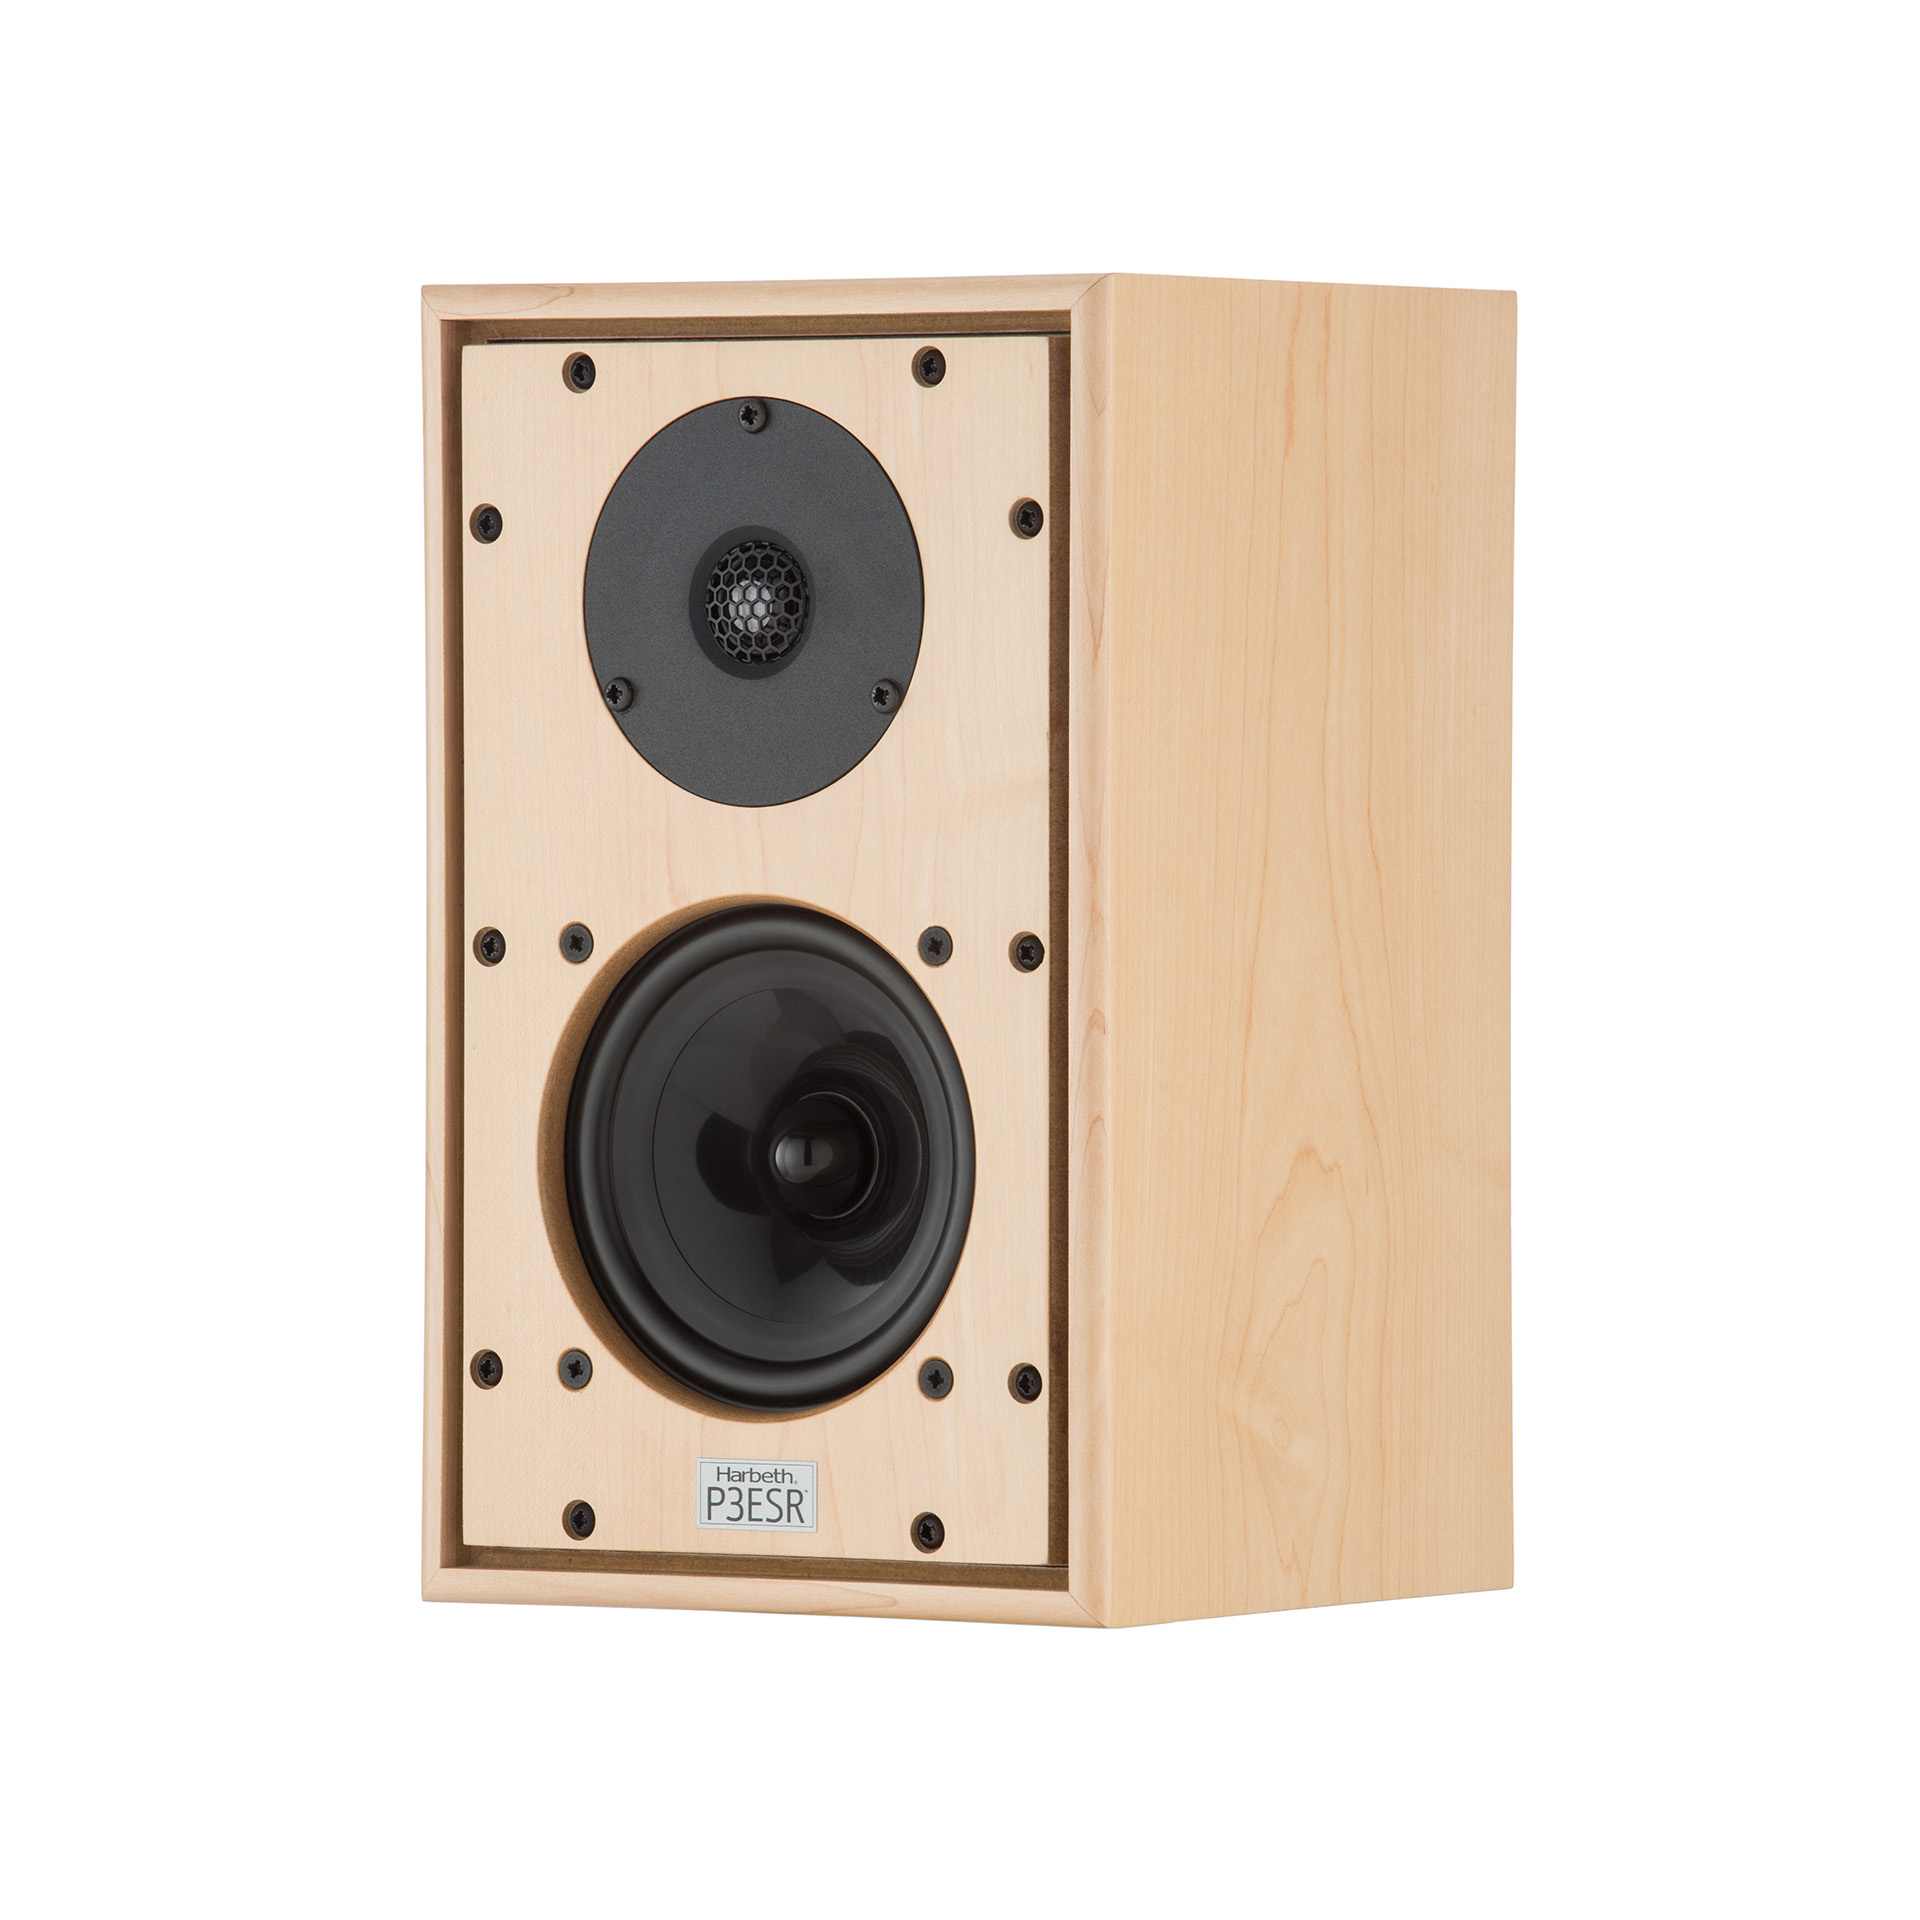 Harbeth P3ESR Maple - Chattelin Audio Systems